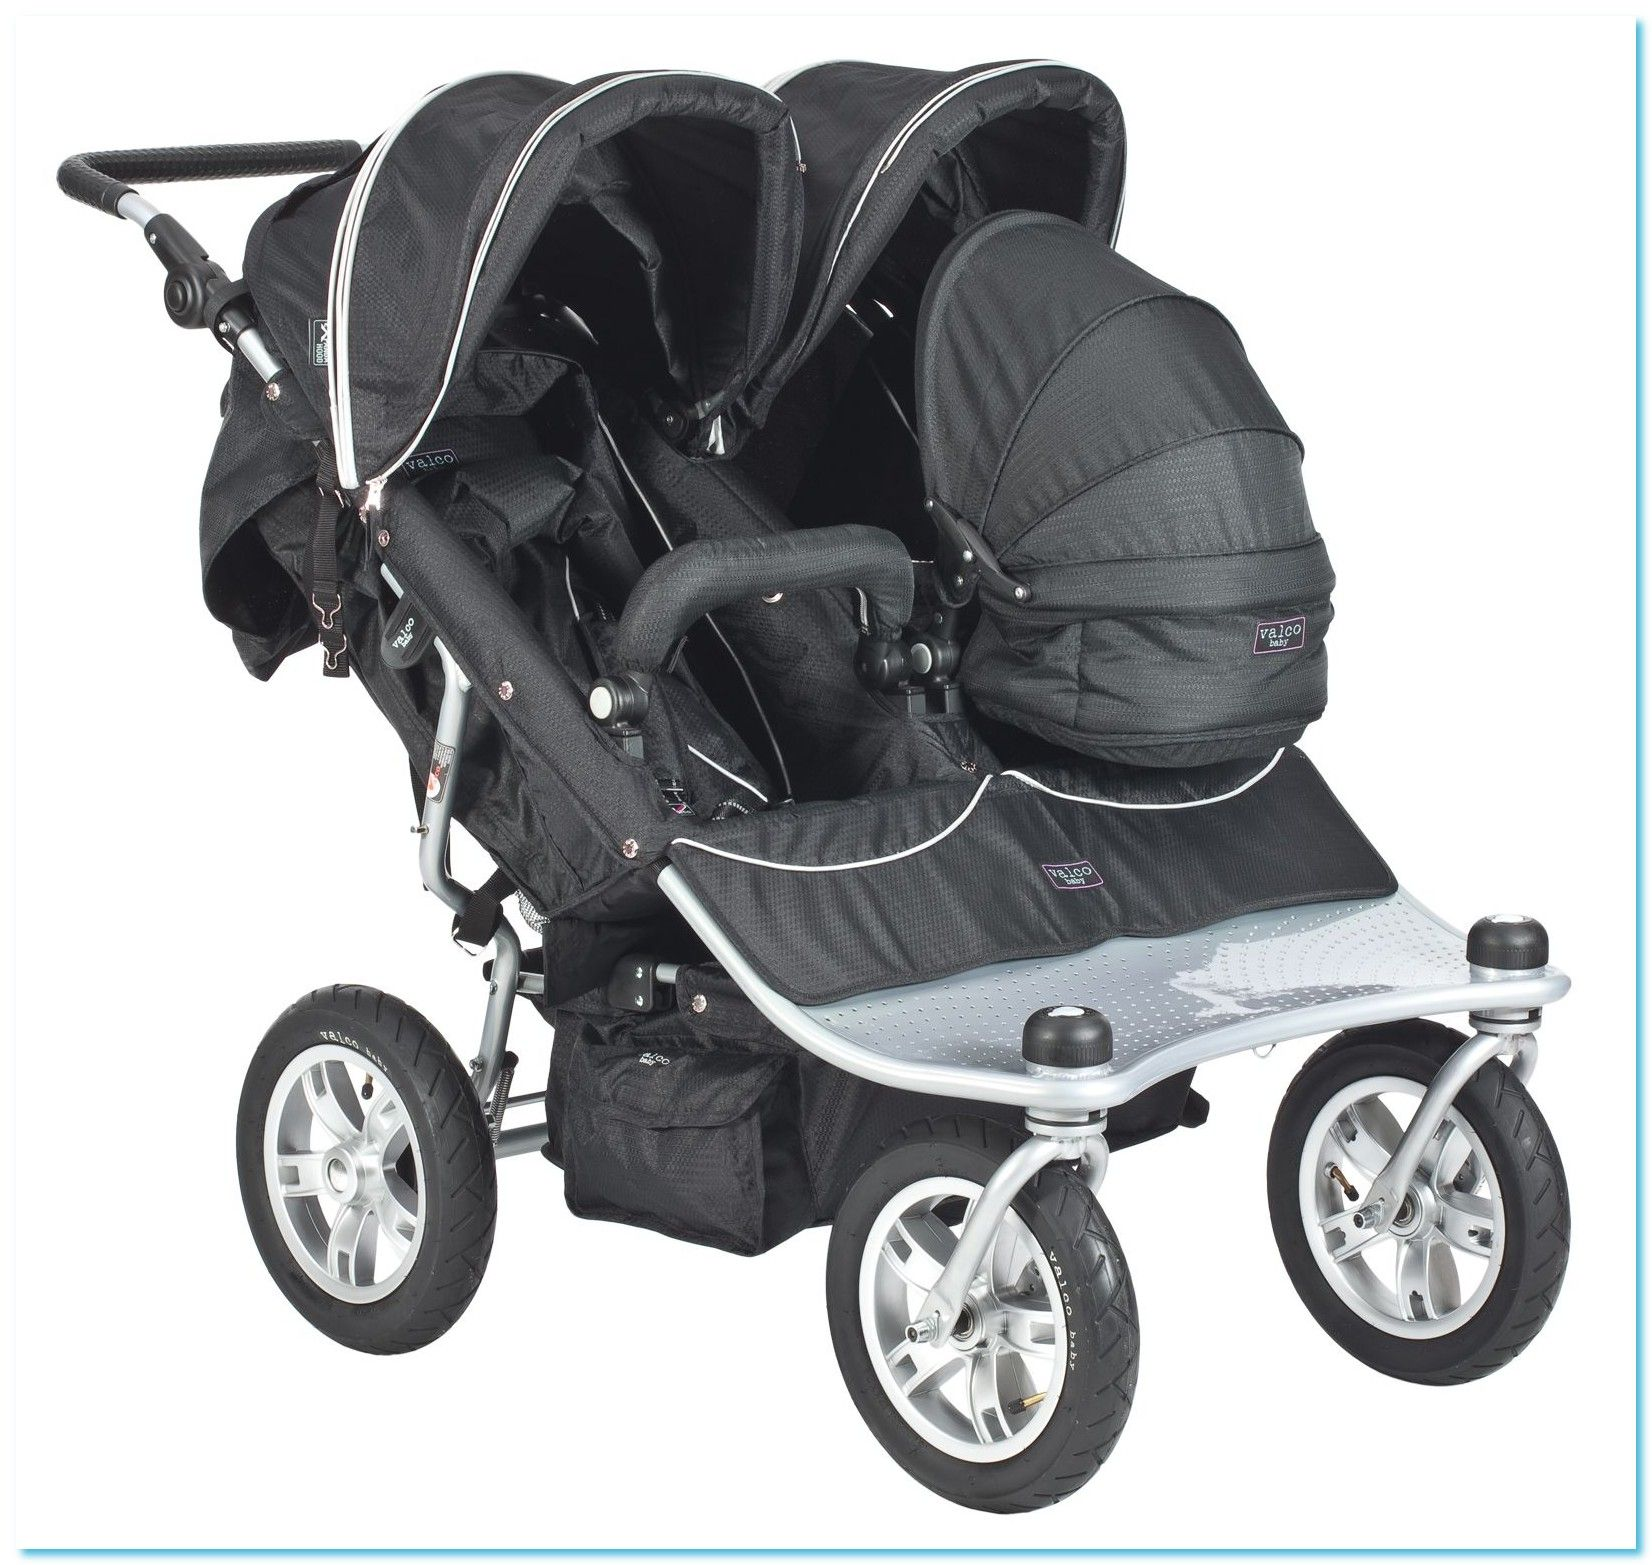 Graco Modes Duo Stroller For Twins 95 Reference Of Baby Umbrella Strollers Twins In 2020